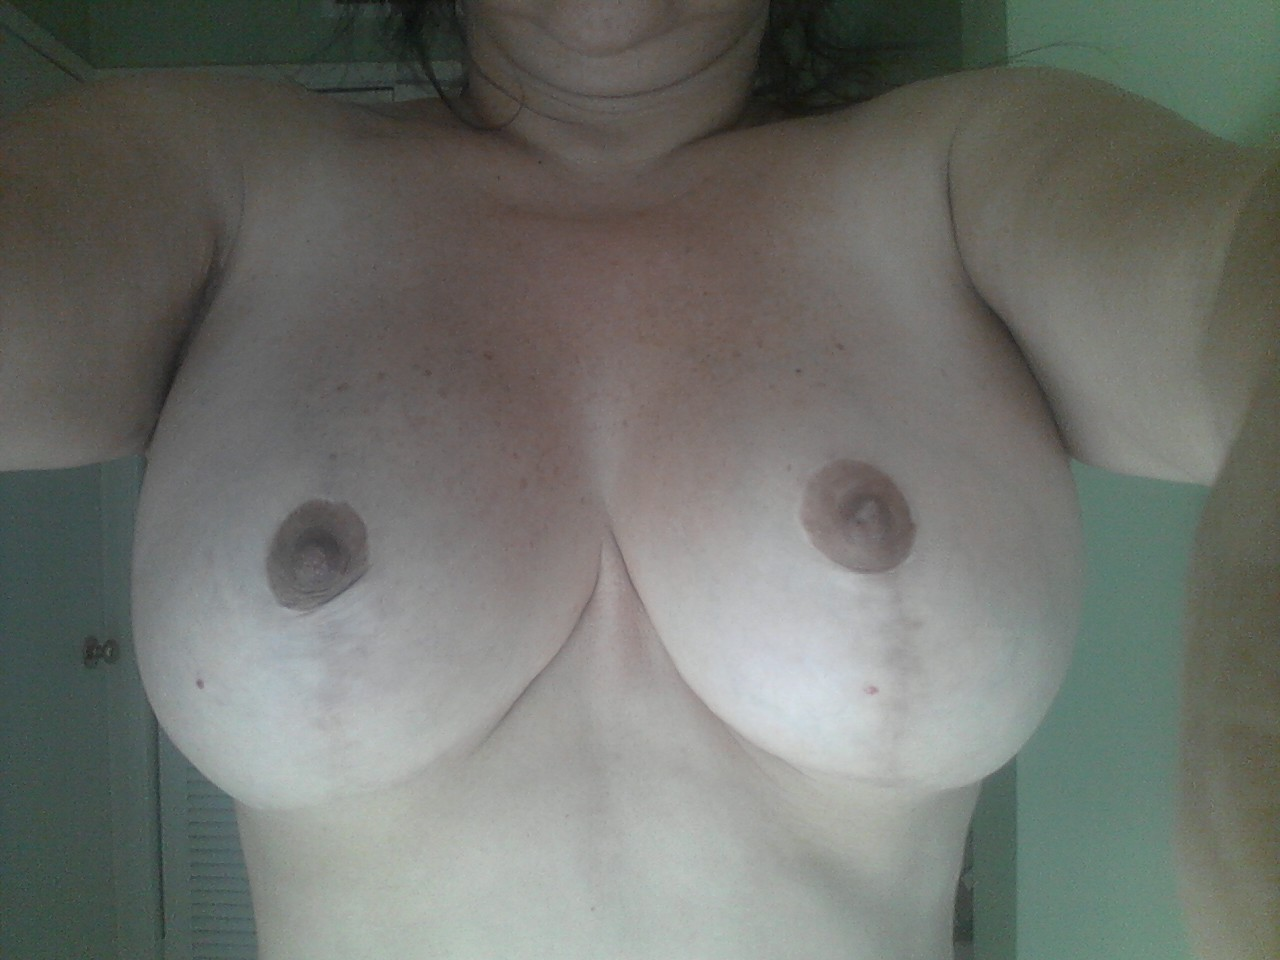 Breast Lift and Augmentation at 7 months